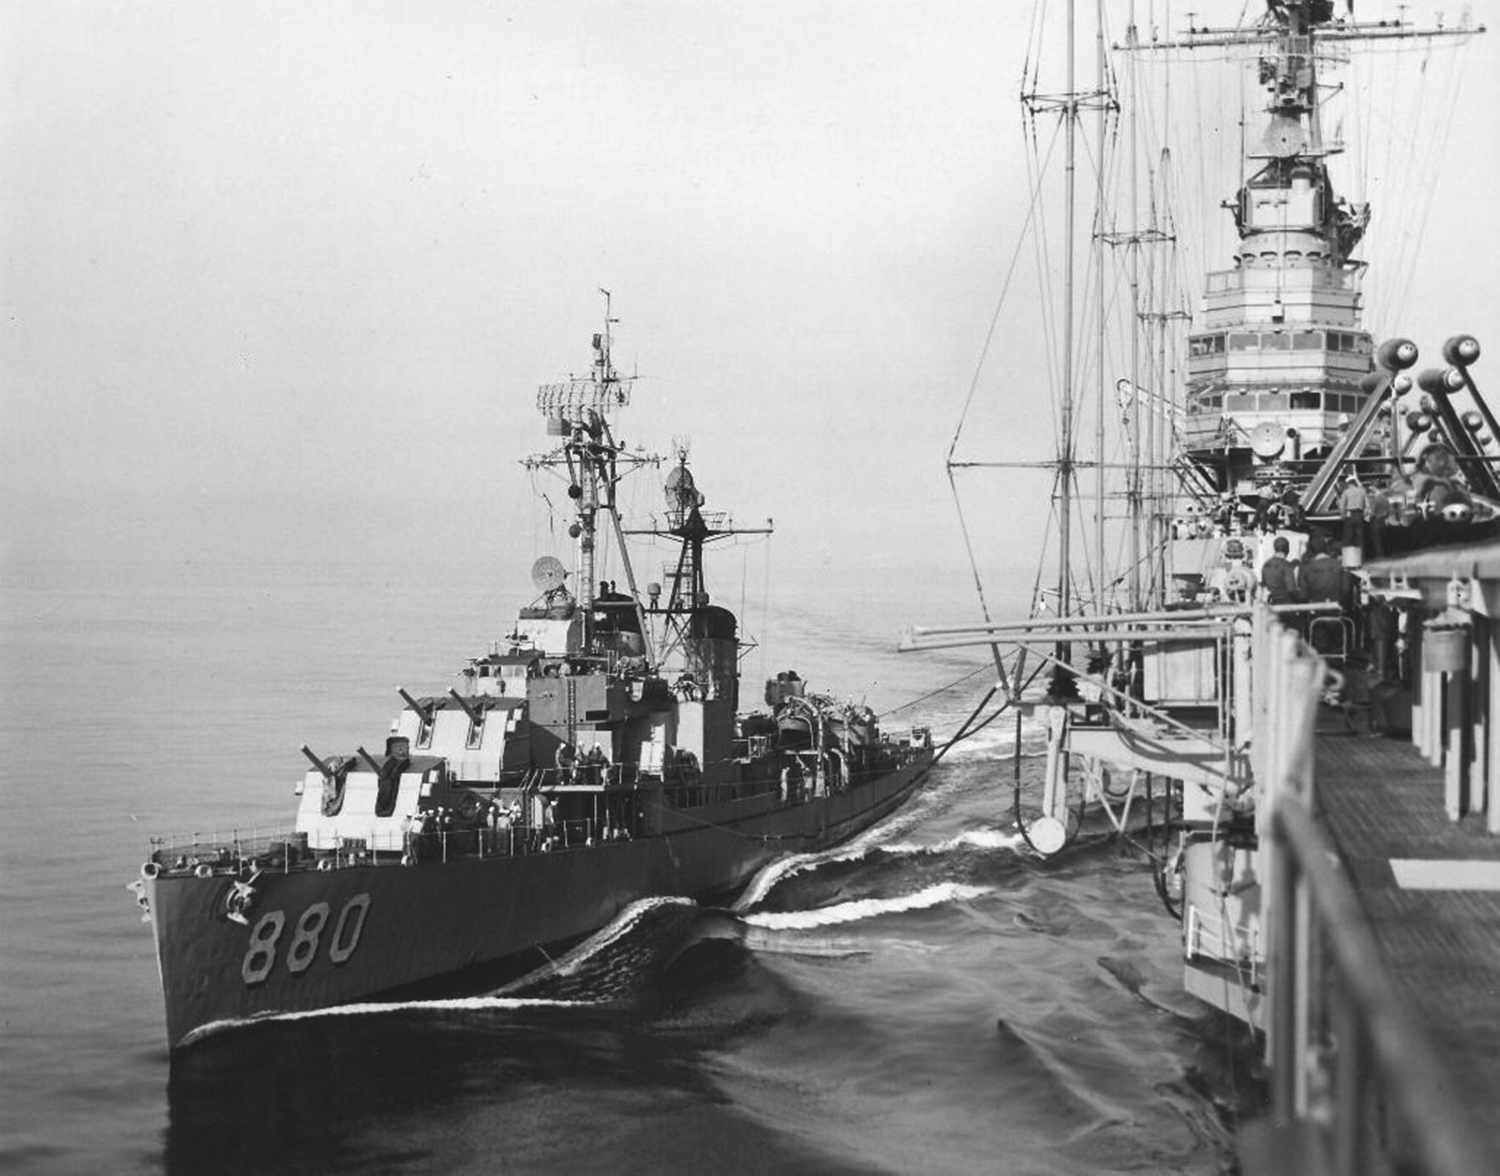 'Hi Resolution Photo Click Here' from the web at 'http://www.usscoralsea.net/images/cvb43USS_Dyess_DD-880_c1951.jpg'